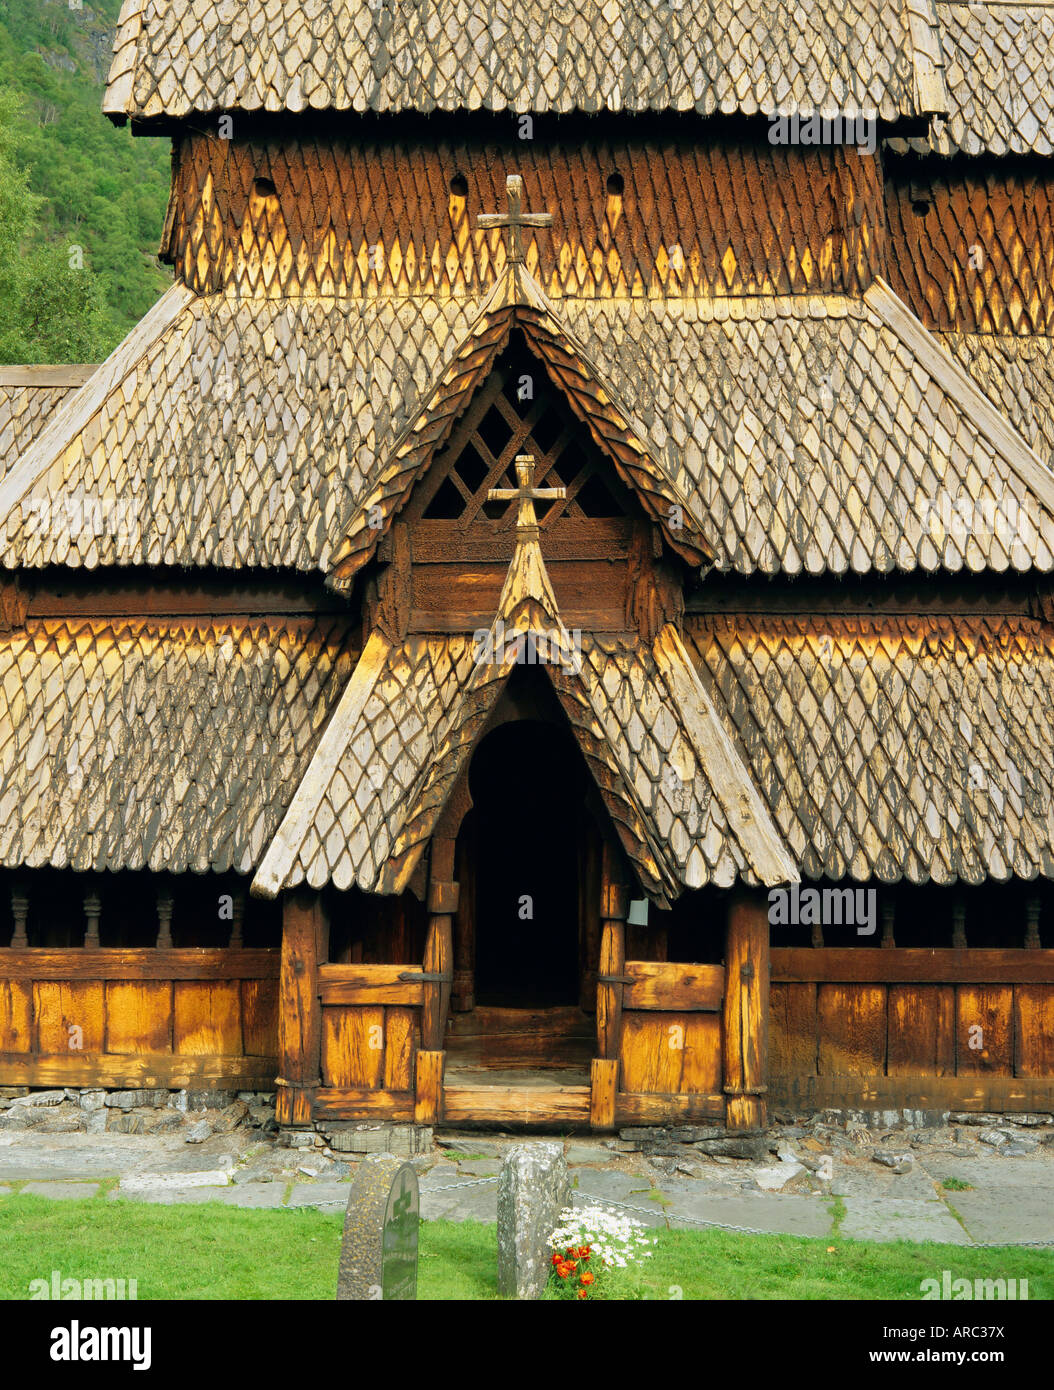 Best preserved 12th century stave church in Norway, Borgund, Western Fjords, Norway, Scandinavia, Europe - Stock Image